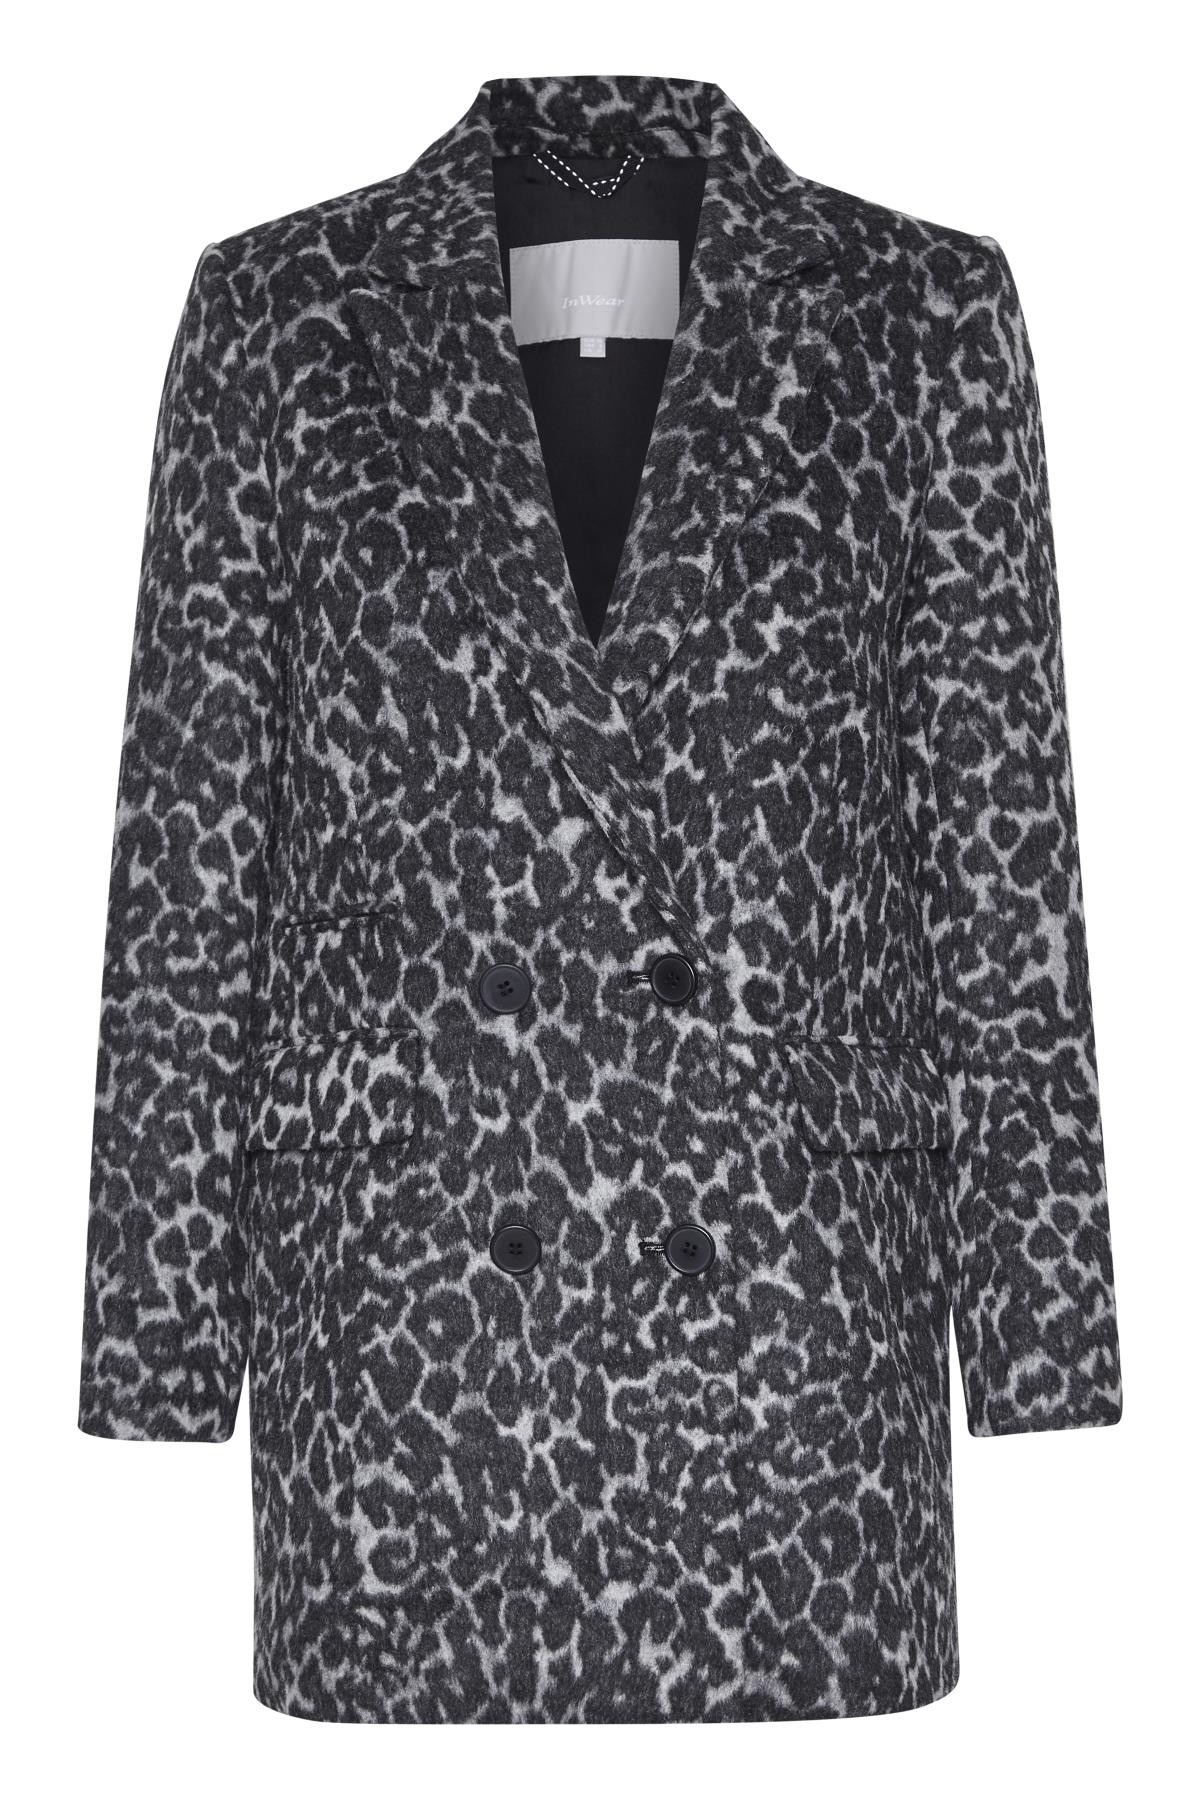 Image of   InWear GIOVANNA BLAZER 30103438 (Leopard Non-color 11367, 34)